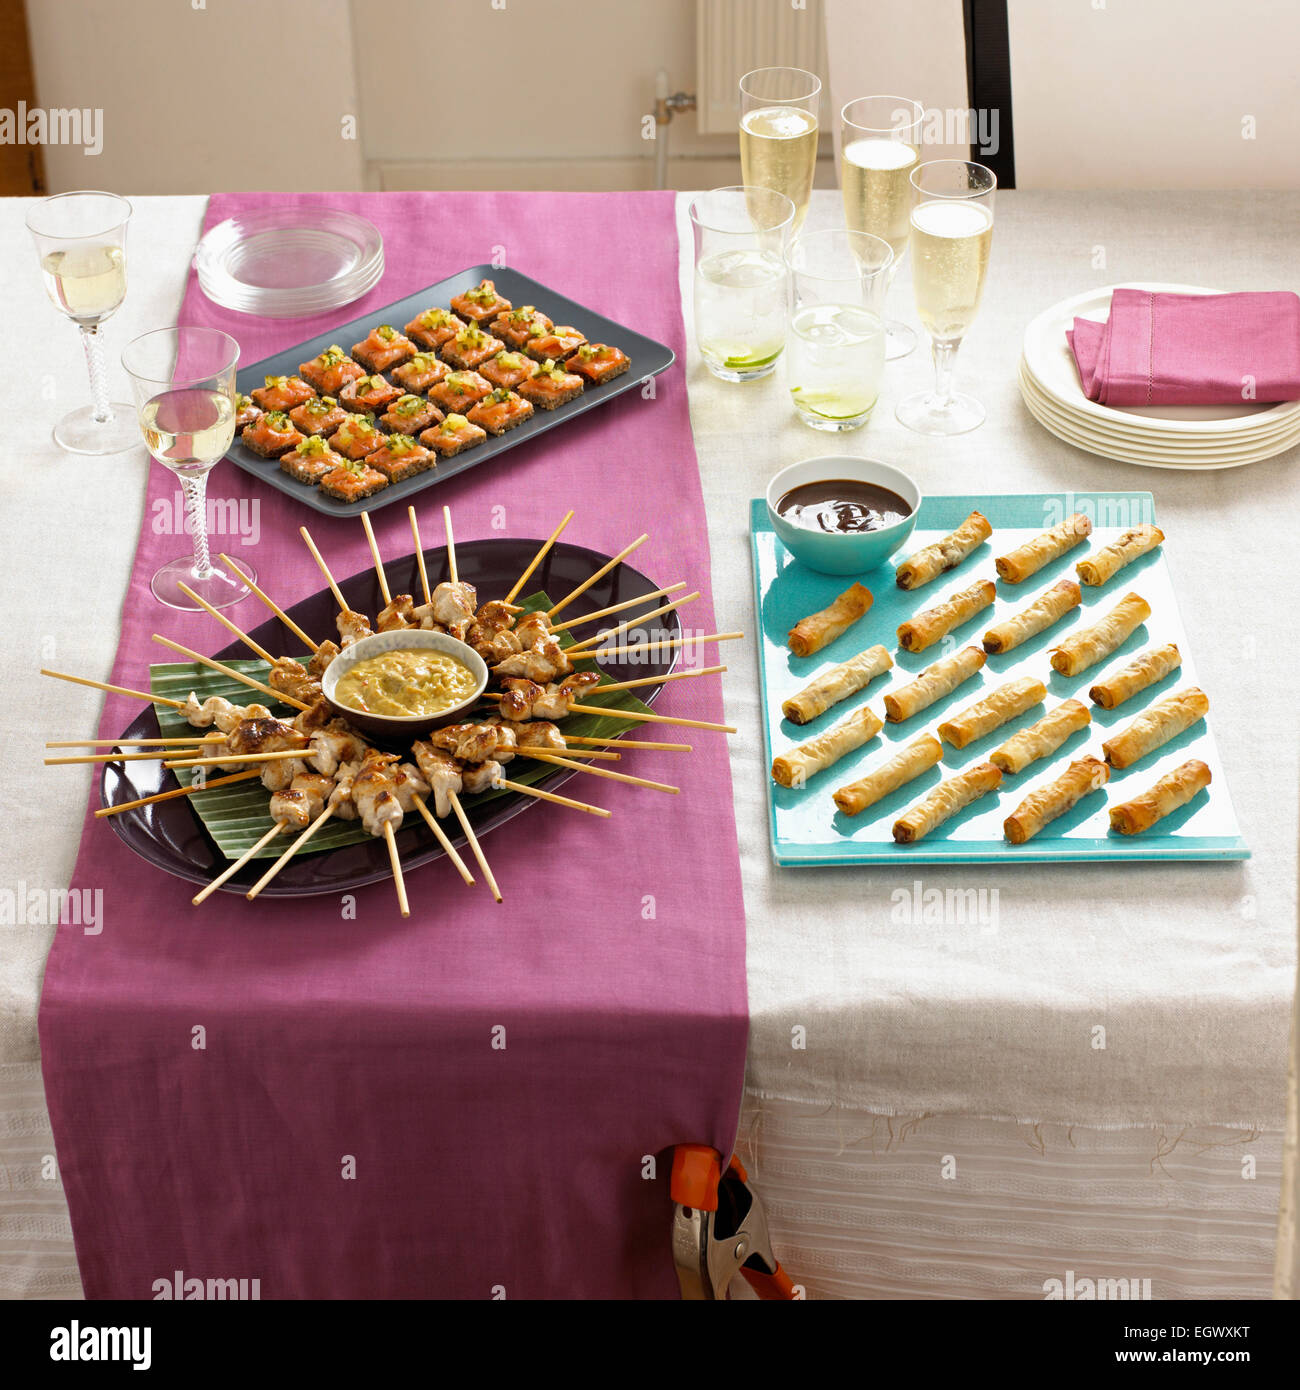 Finger Food, Canapes, Hors d'Oeuvre - Stock Image